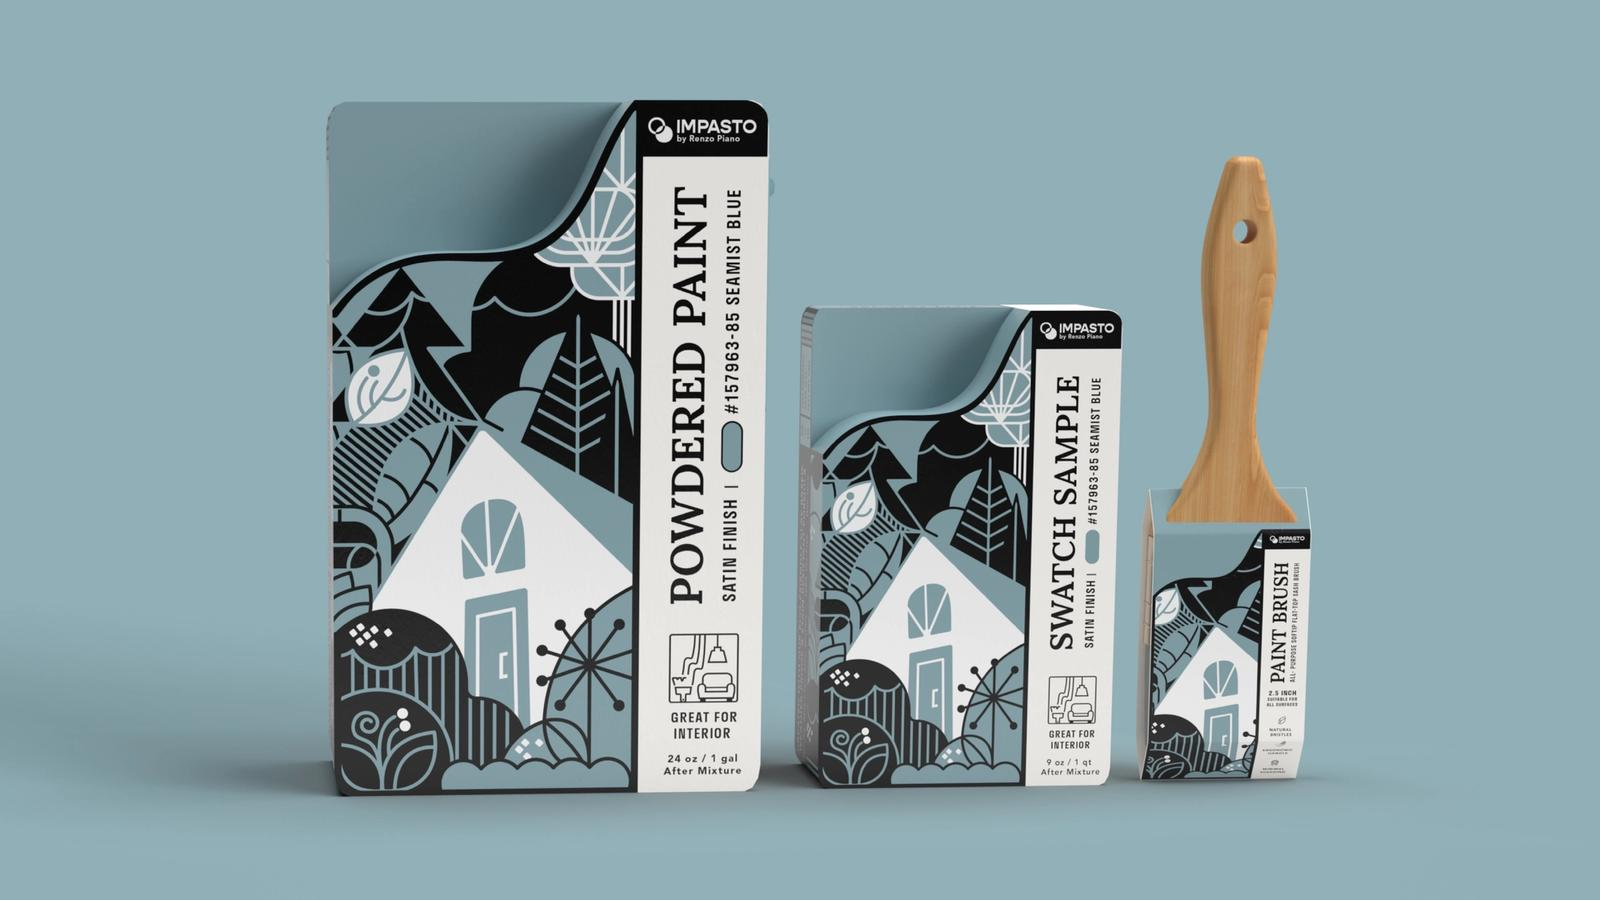 Impasto Powdered Paint Mix // Product Packaging